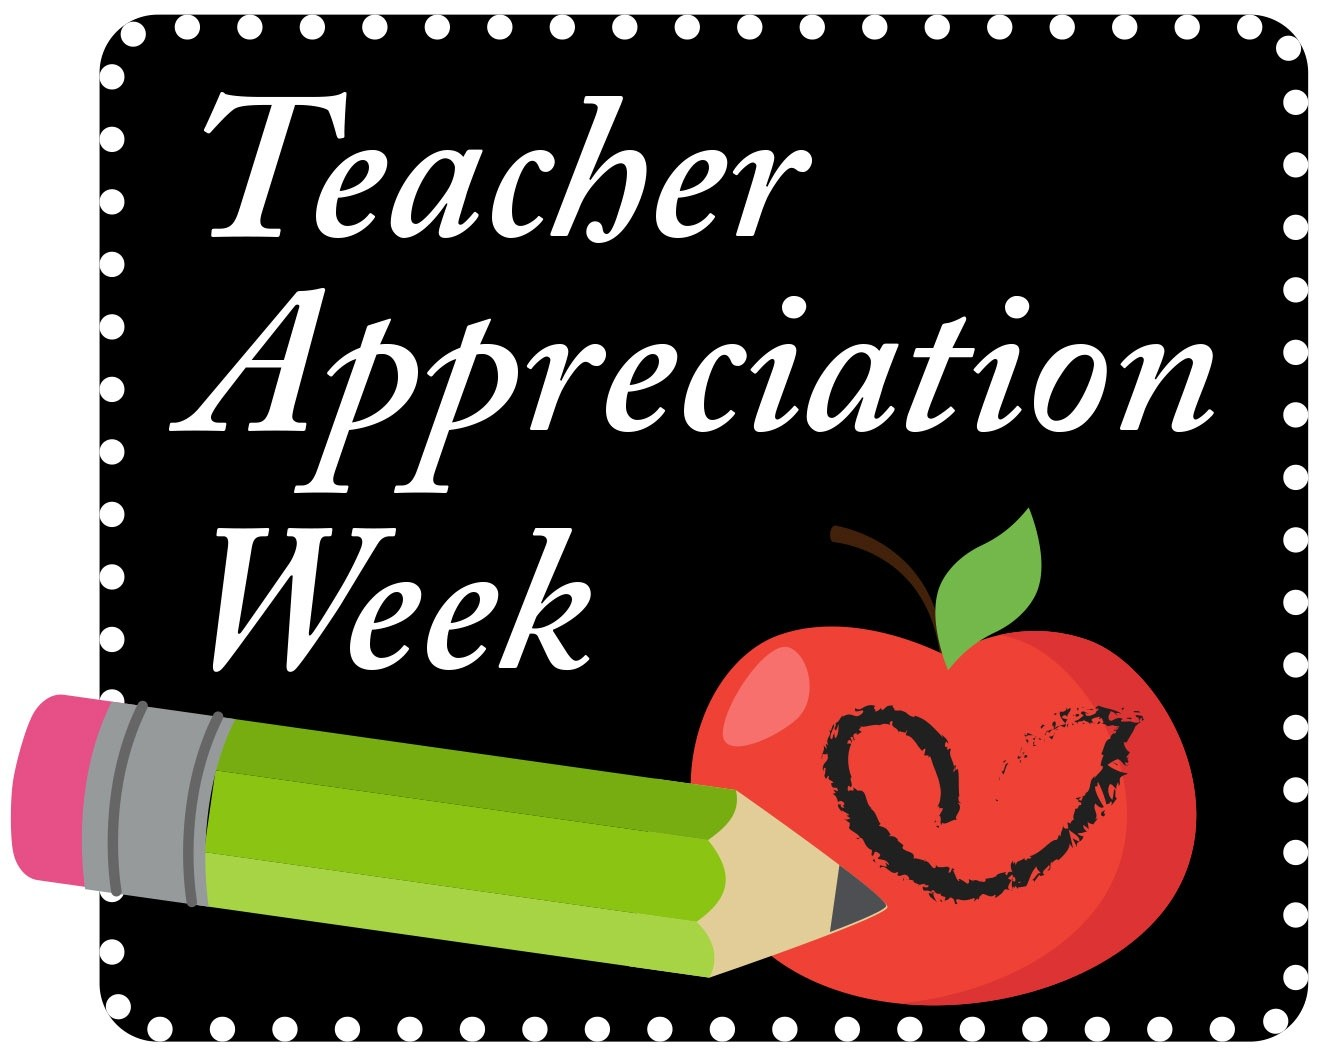 Classroom Ideas For Teacher Appreciation Week ~ Teacher appreciation week happy valley school east campus